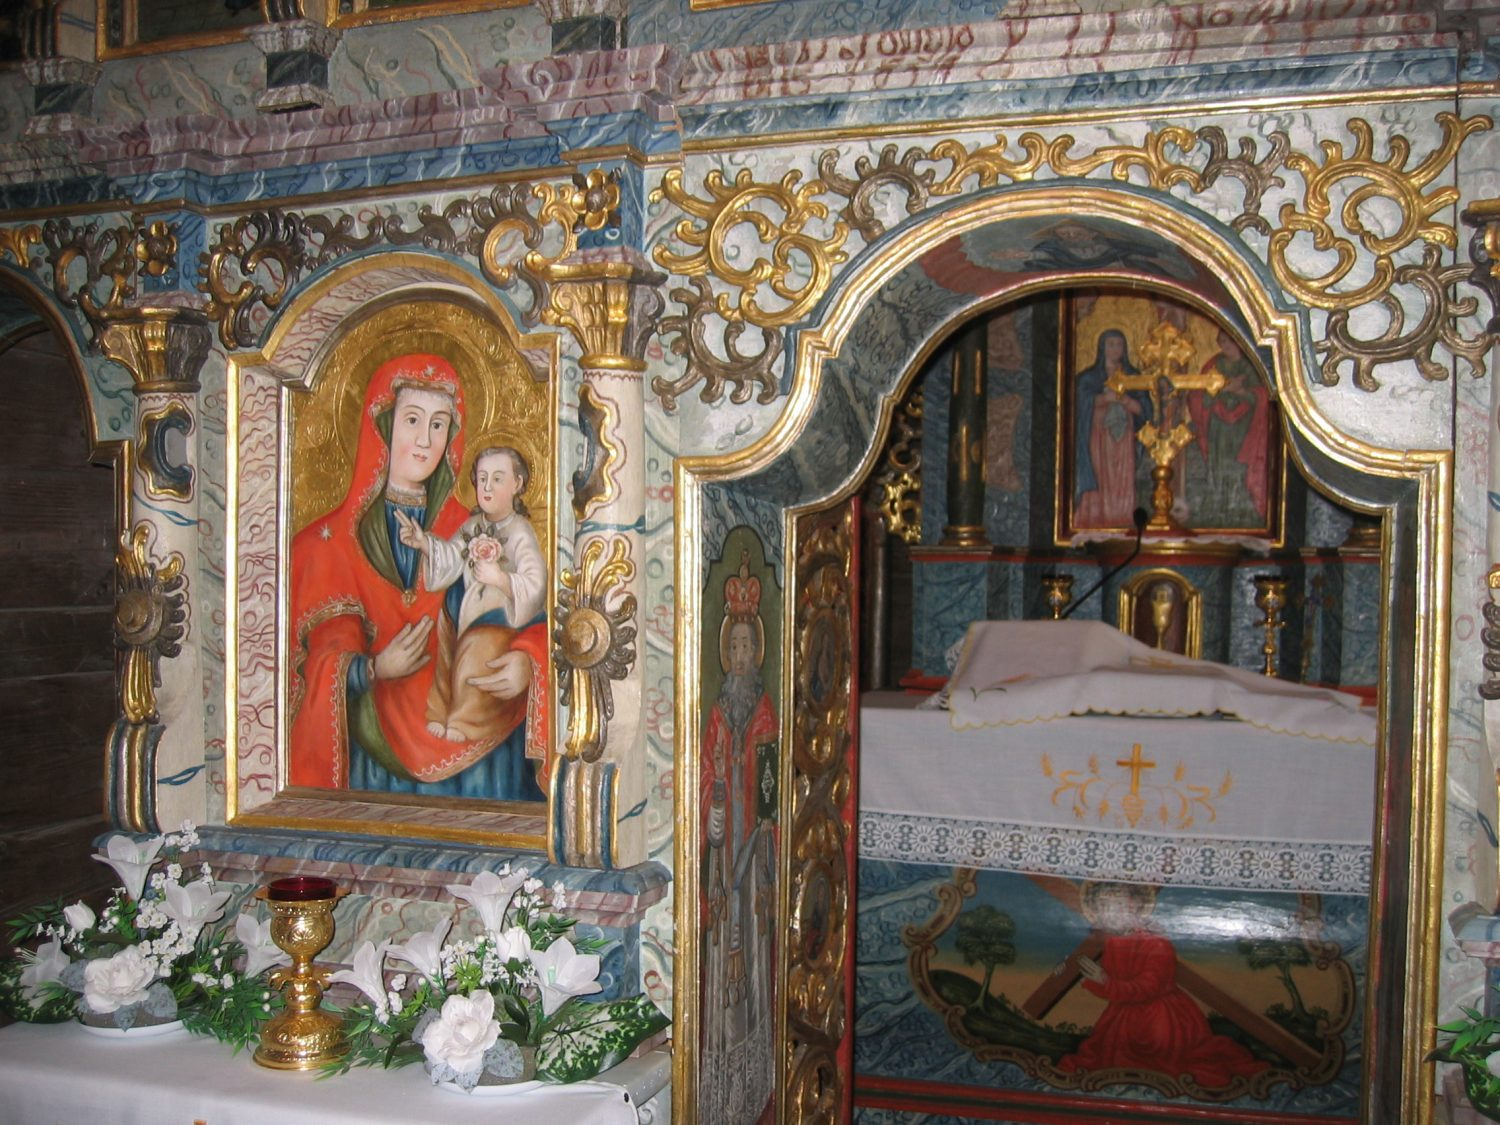 Greek Catholic Church of St. Nicholas, Icon of the Mother of God with Jesus, Bodružal (photo by Mária Laurincová)